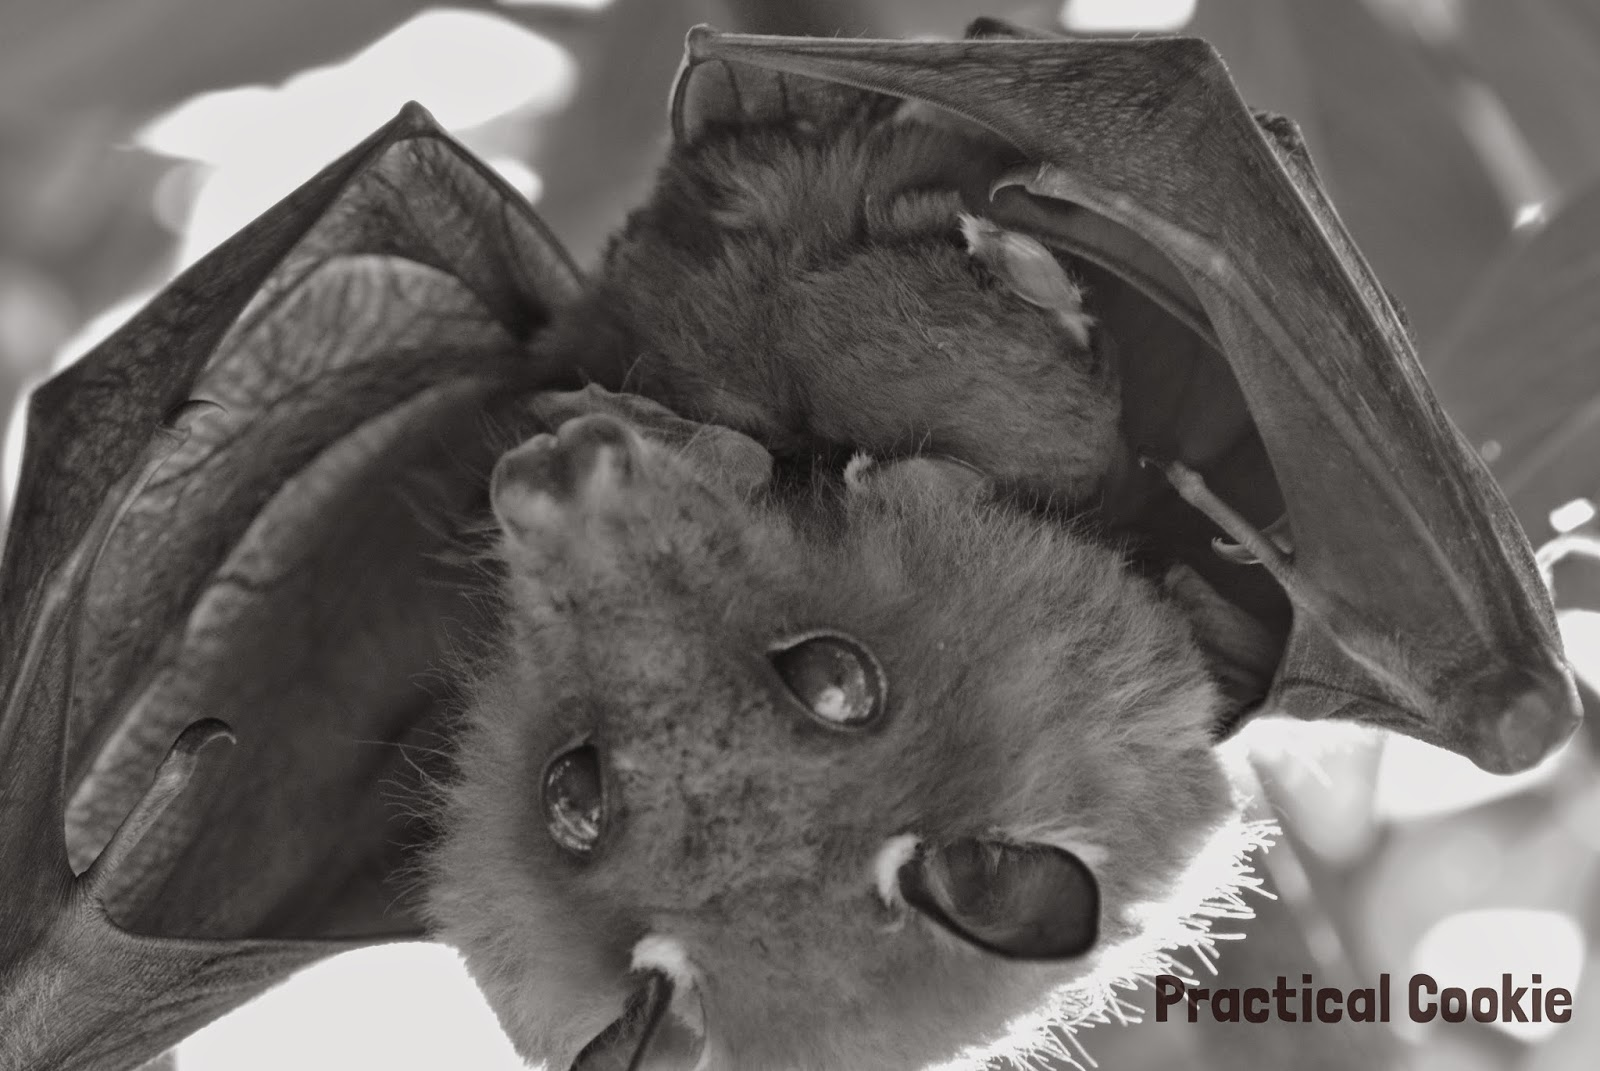 Bat and her baby in black and white